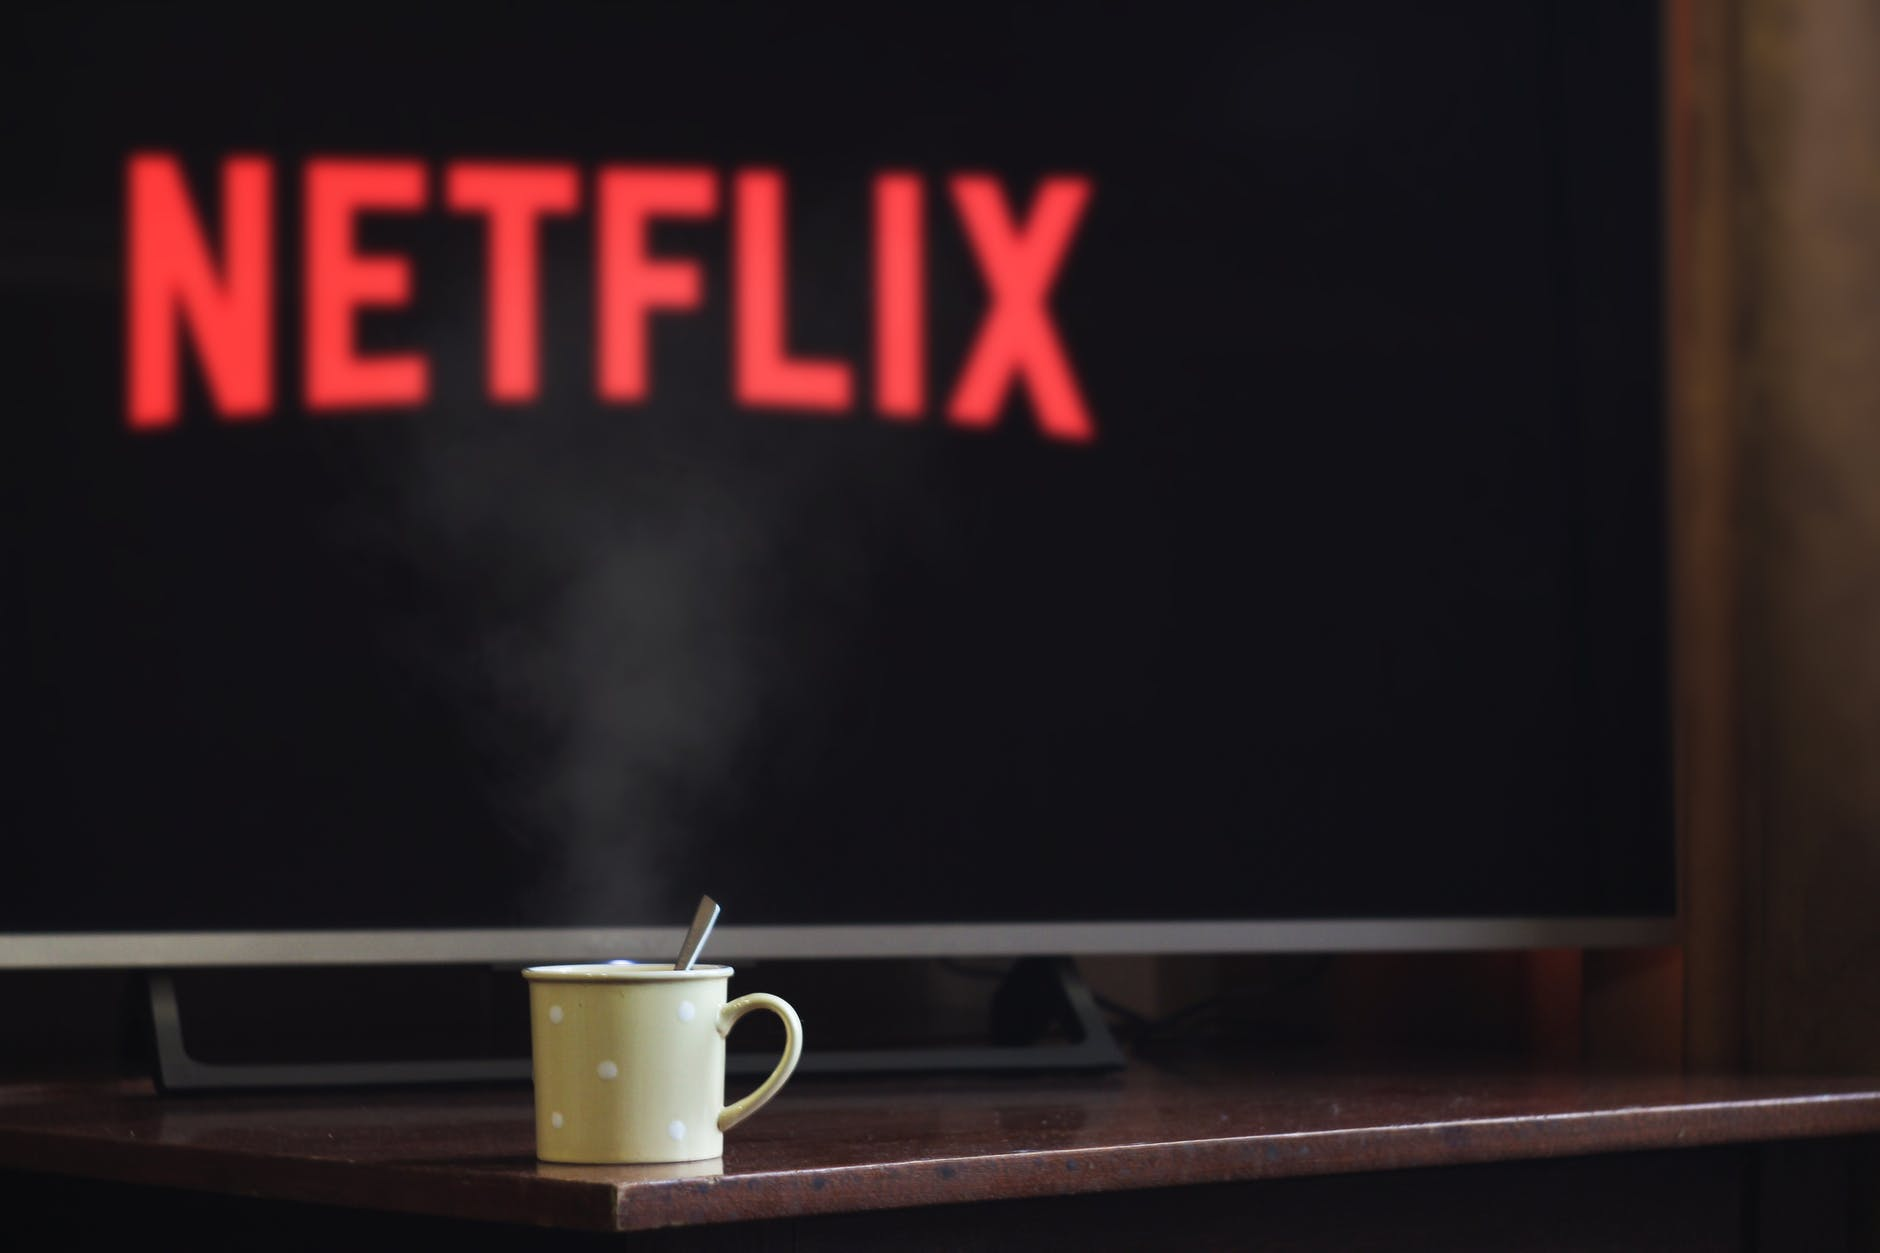 Steaming cup of hot beverage with a wide flat-screen TV showing Netflix logo in the background